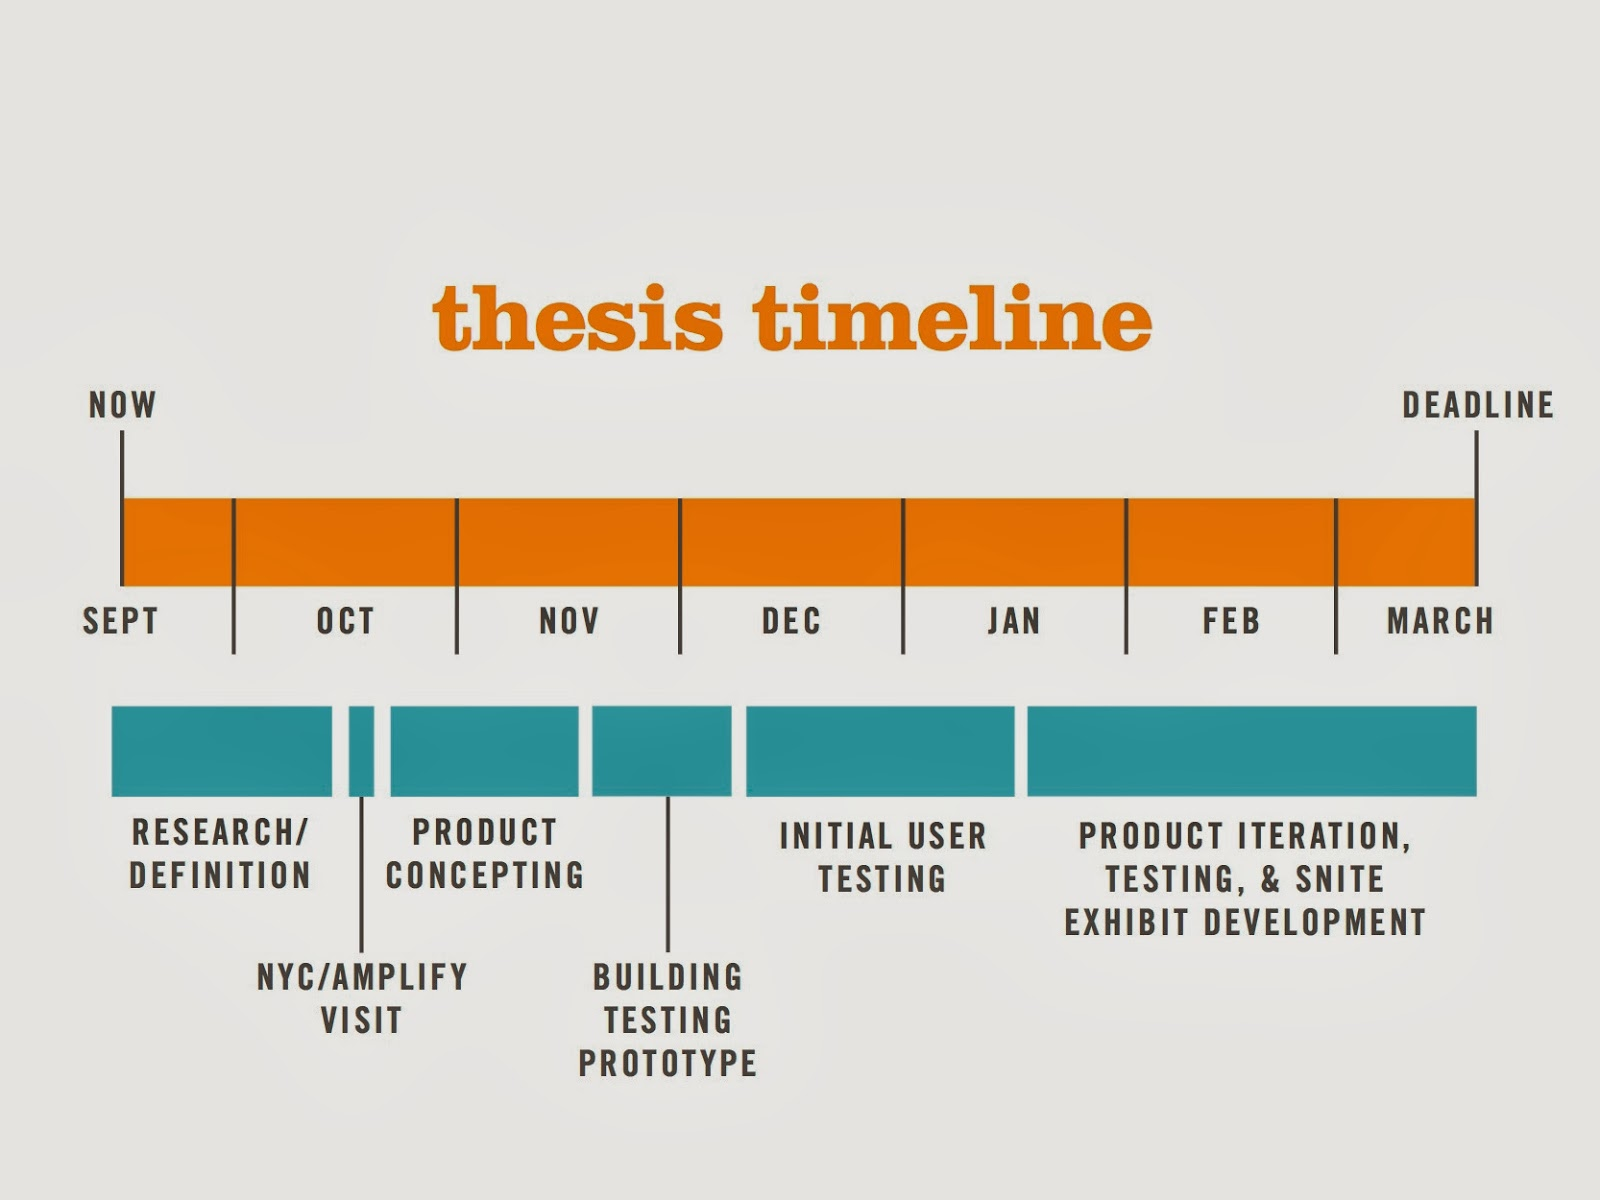 Dissertation timeline of leadership theory development